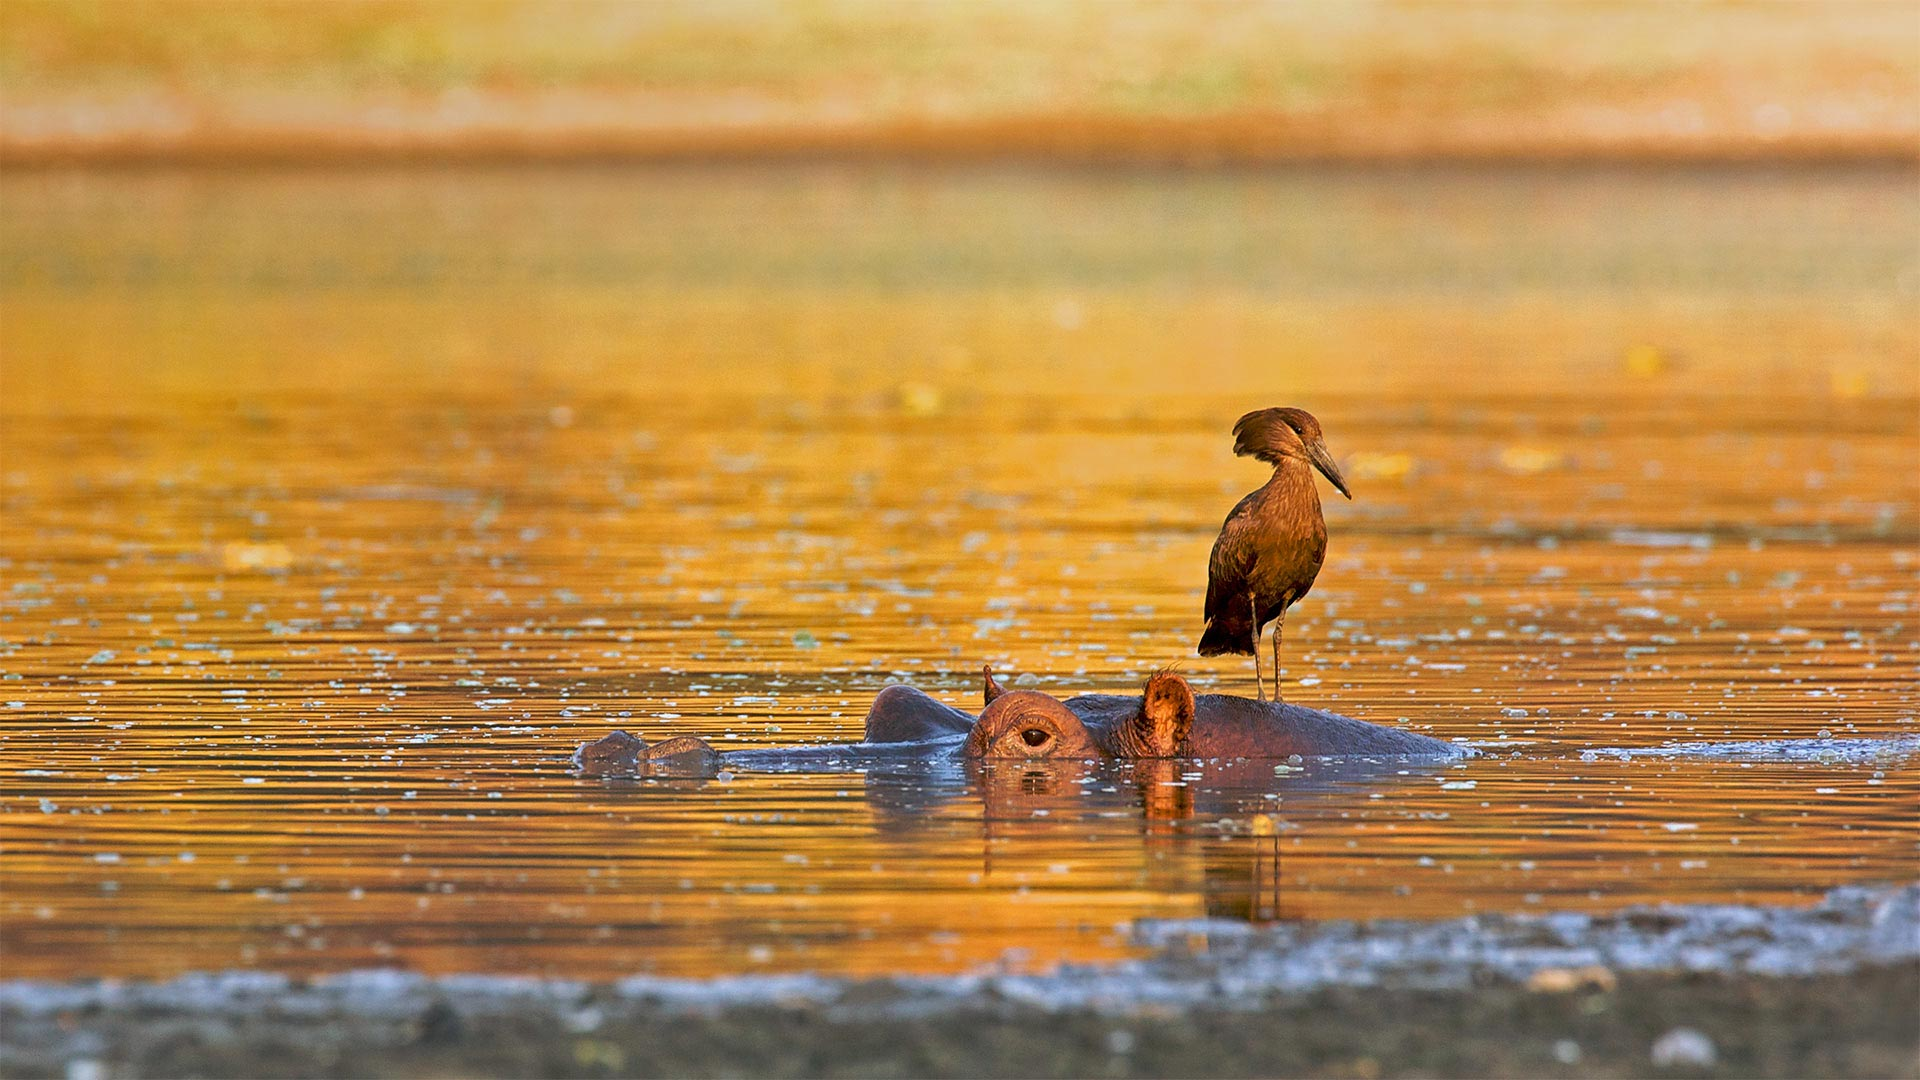 Hamerkop standing on a hippo, Mana Pools National Park, Zimbabwe (© David Fettes/Getty Images)(Bing United States)